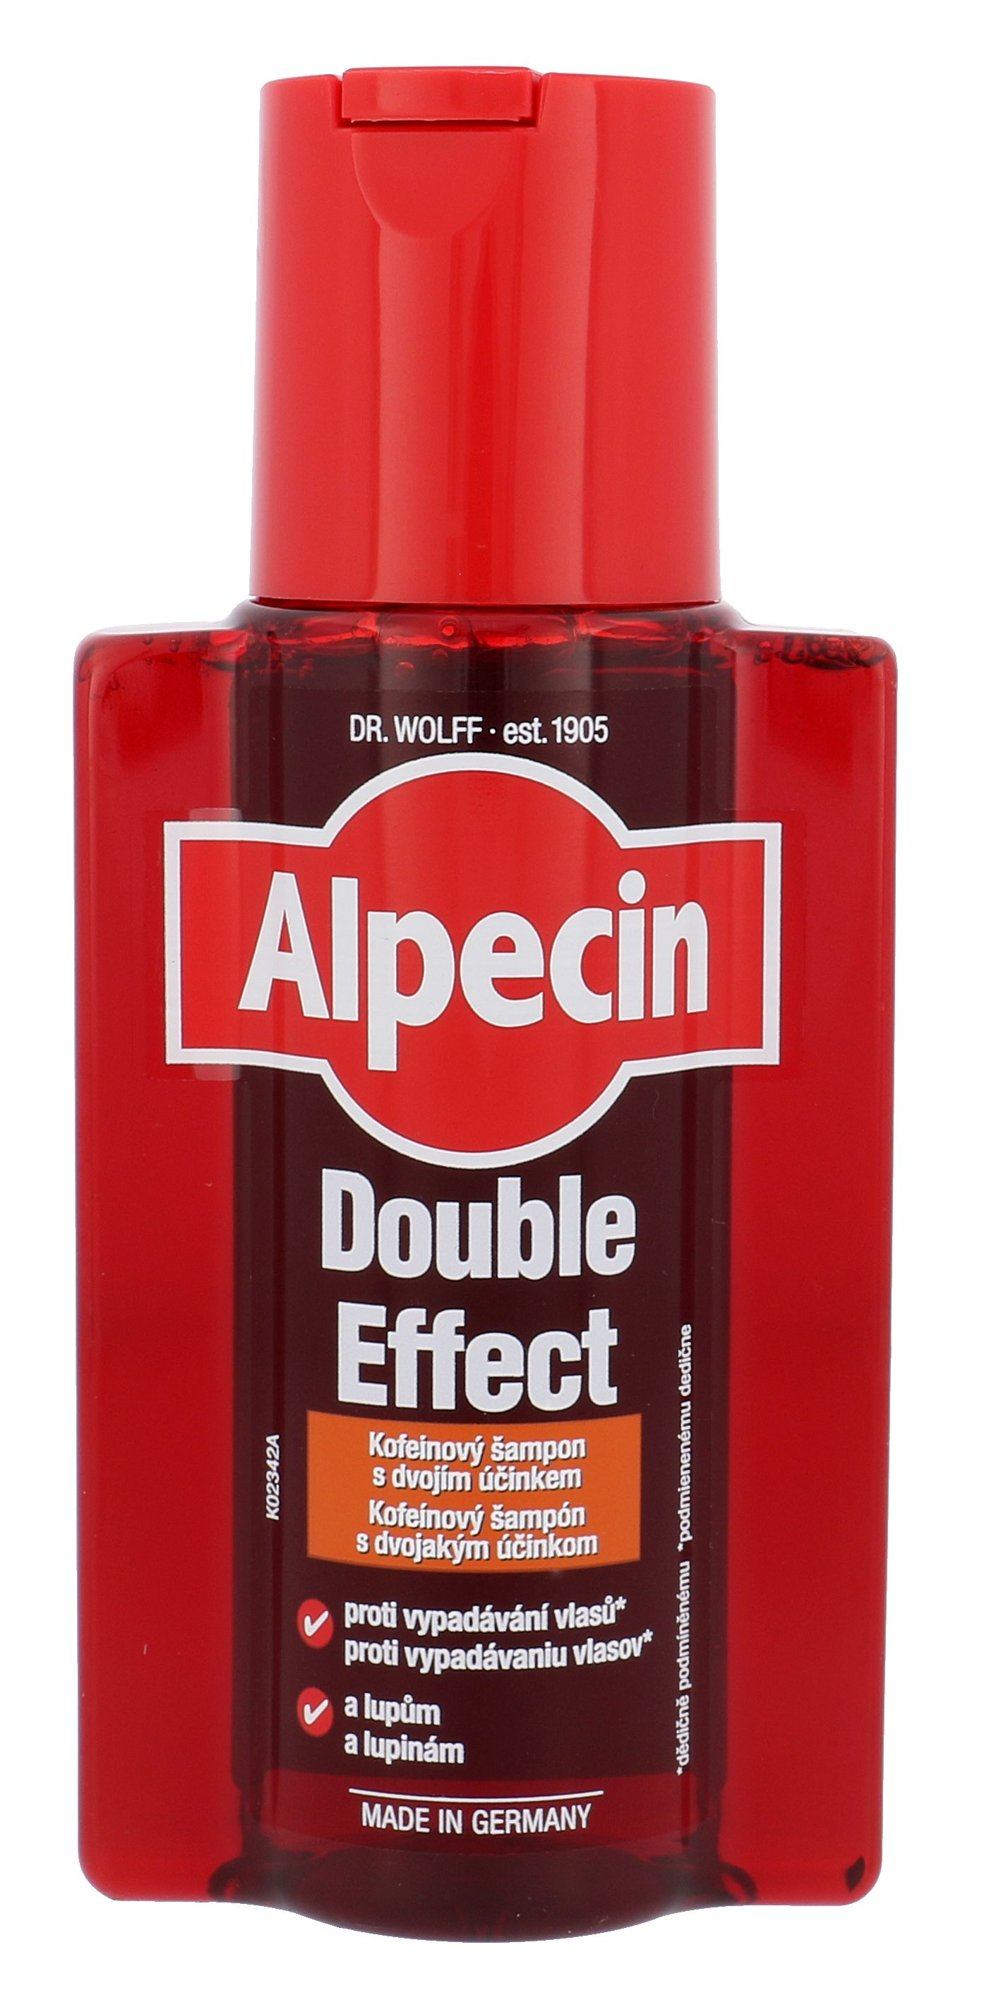 Alpecin Double Effect Caffeine  (Šampon, M, 200 ml)